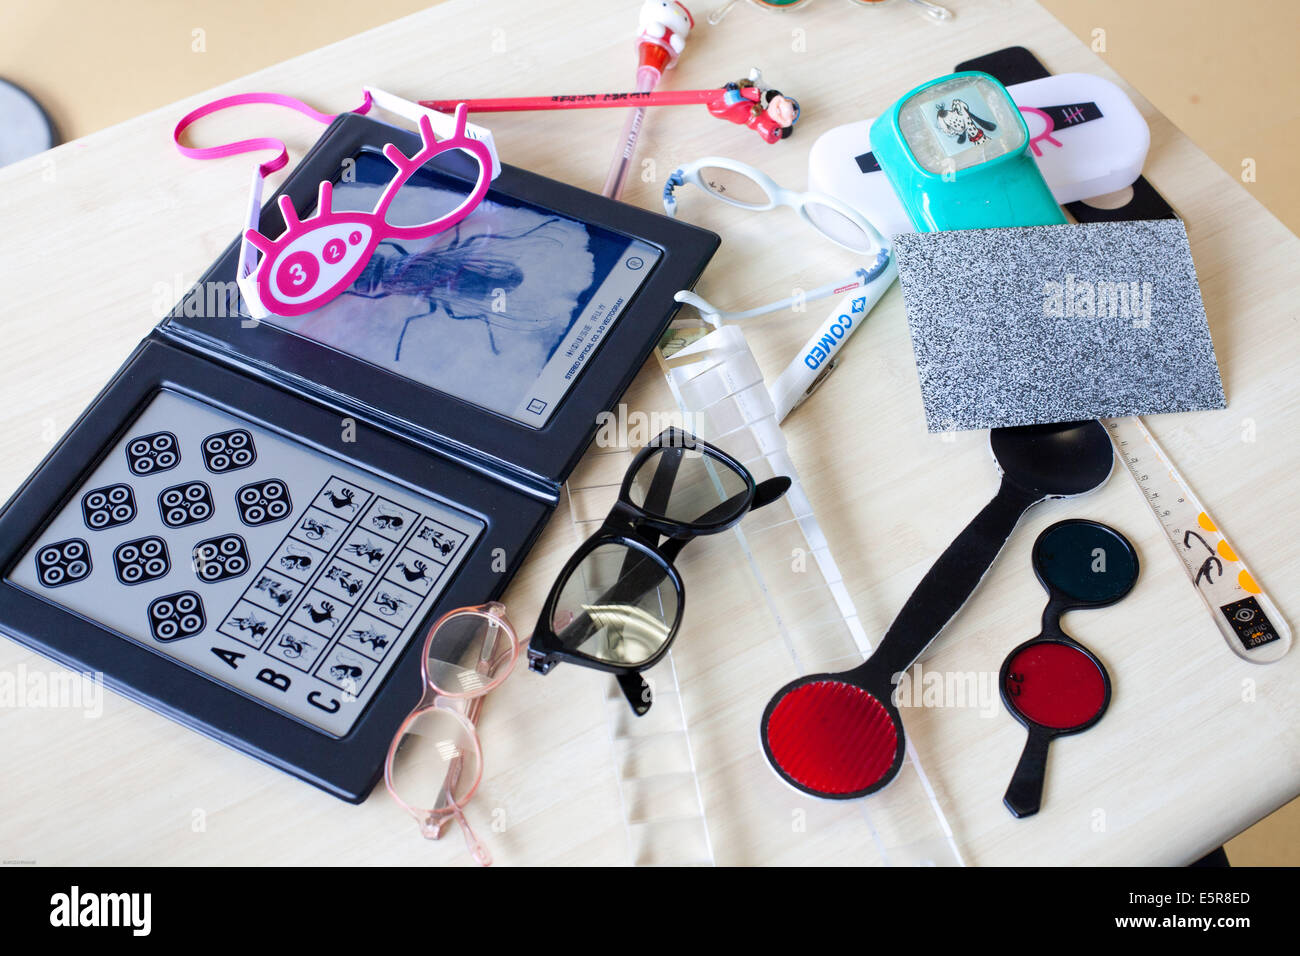 Medical equipment of an ophthalmology departement. - Stock Image